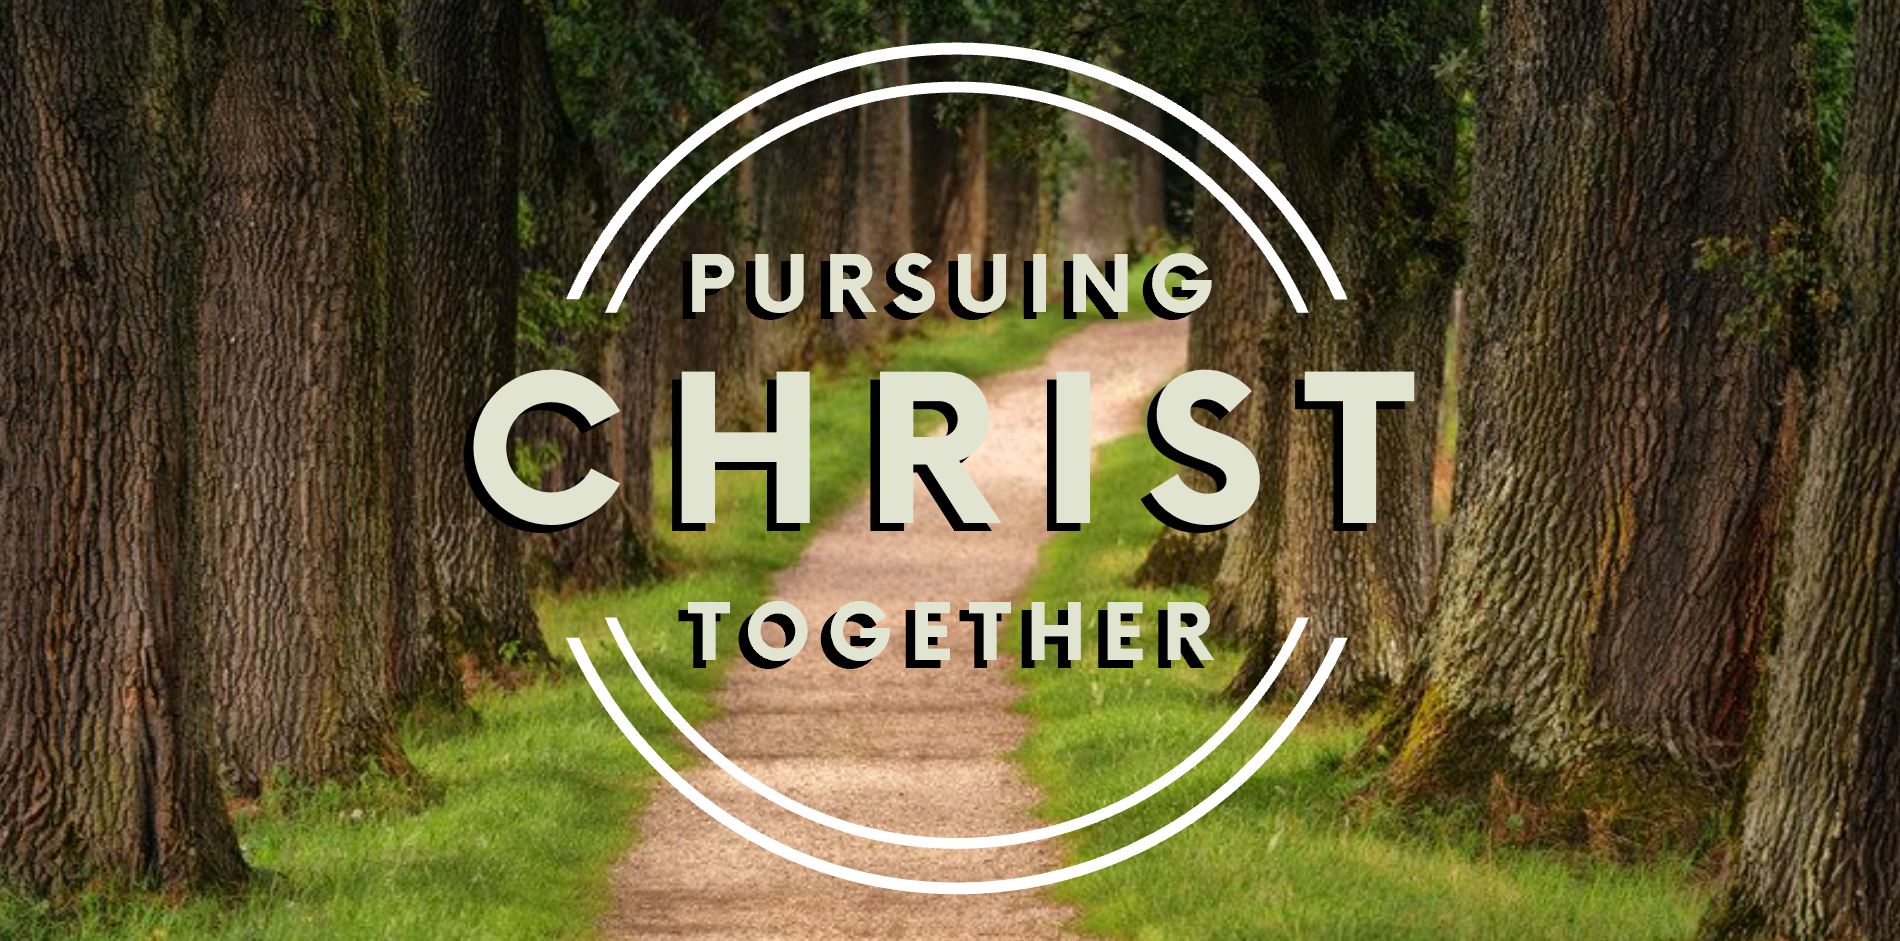 pursuing christ together logo